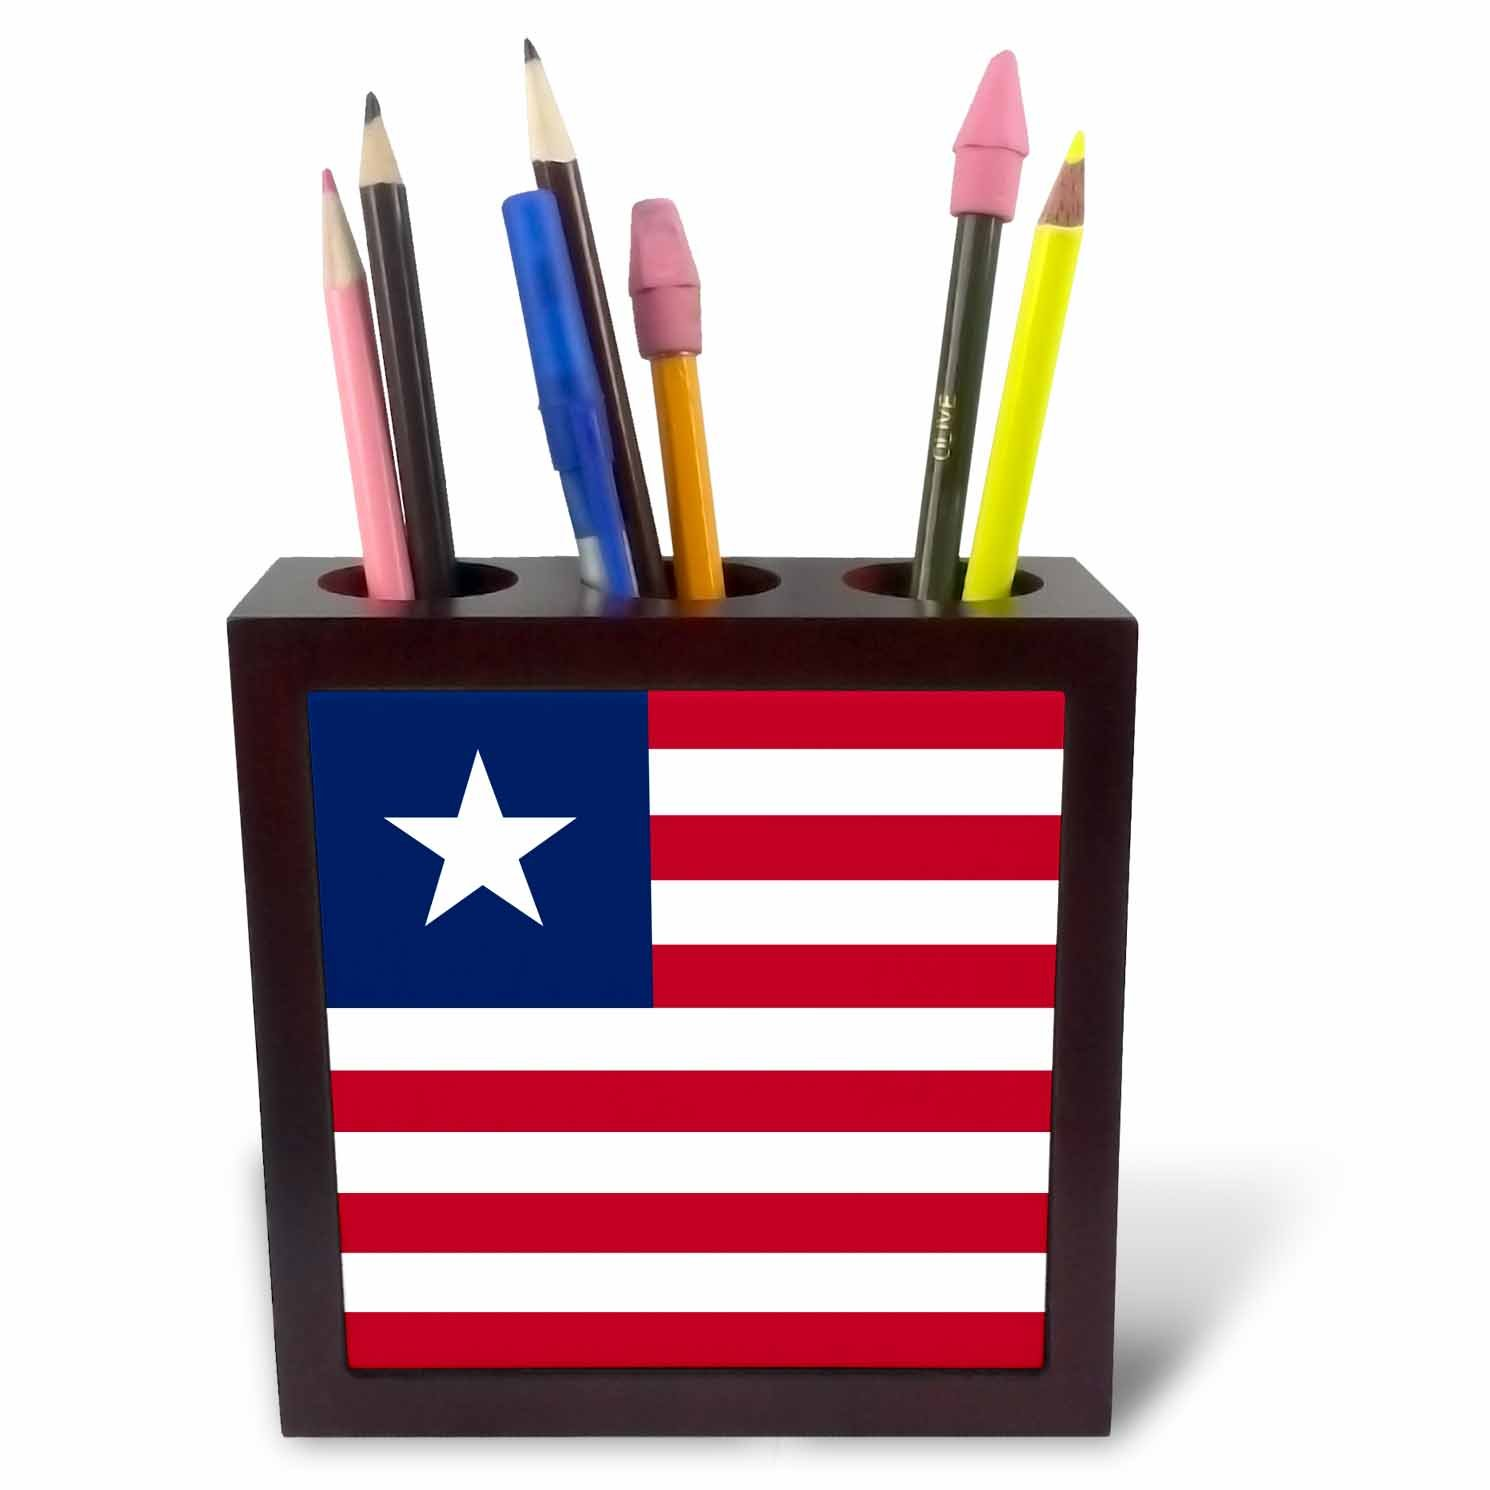 3dRose ph_158356_1 Flag of Liberia West Africa African Country Red and White Stripes Navy Blue Liberian Star Tile Pen Holder, 5-Inch